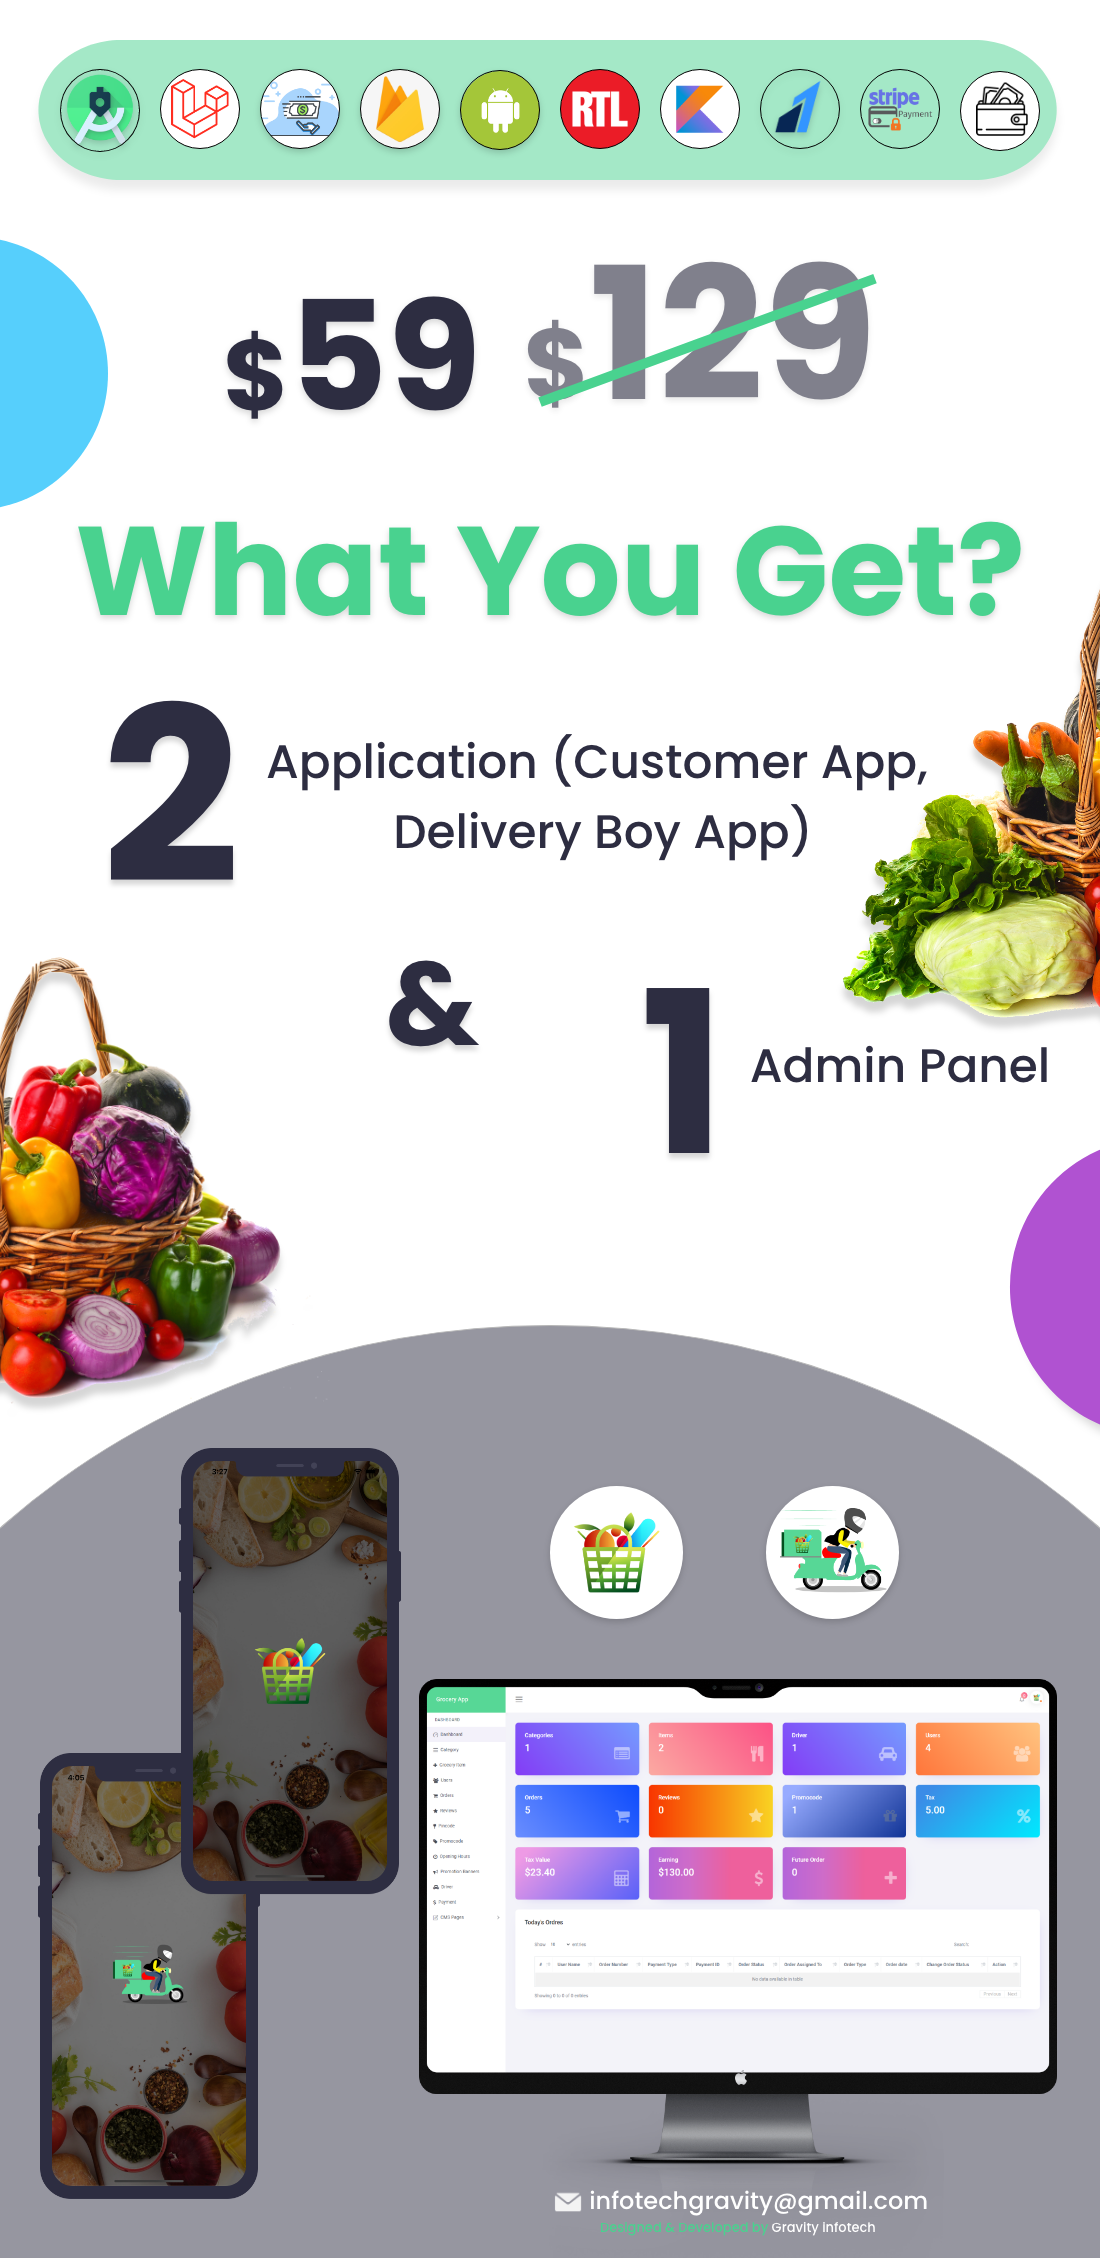 Single Grocery, Food, Pharmacy Store Android User & Delivery Boy Apps With Backend Admin Panel - 3